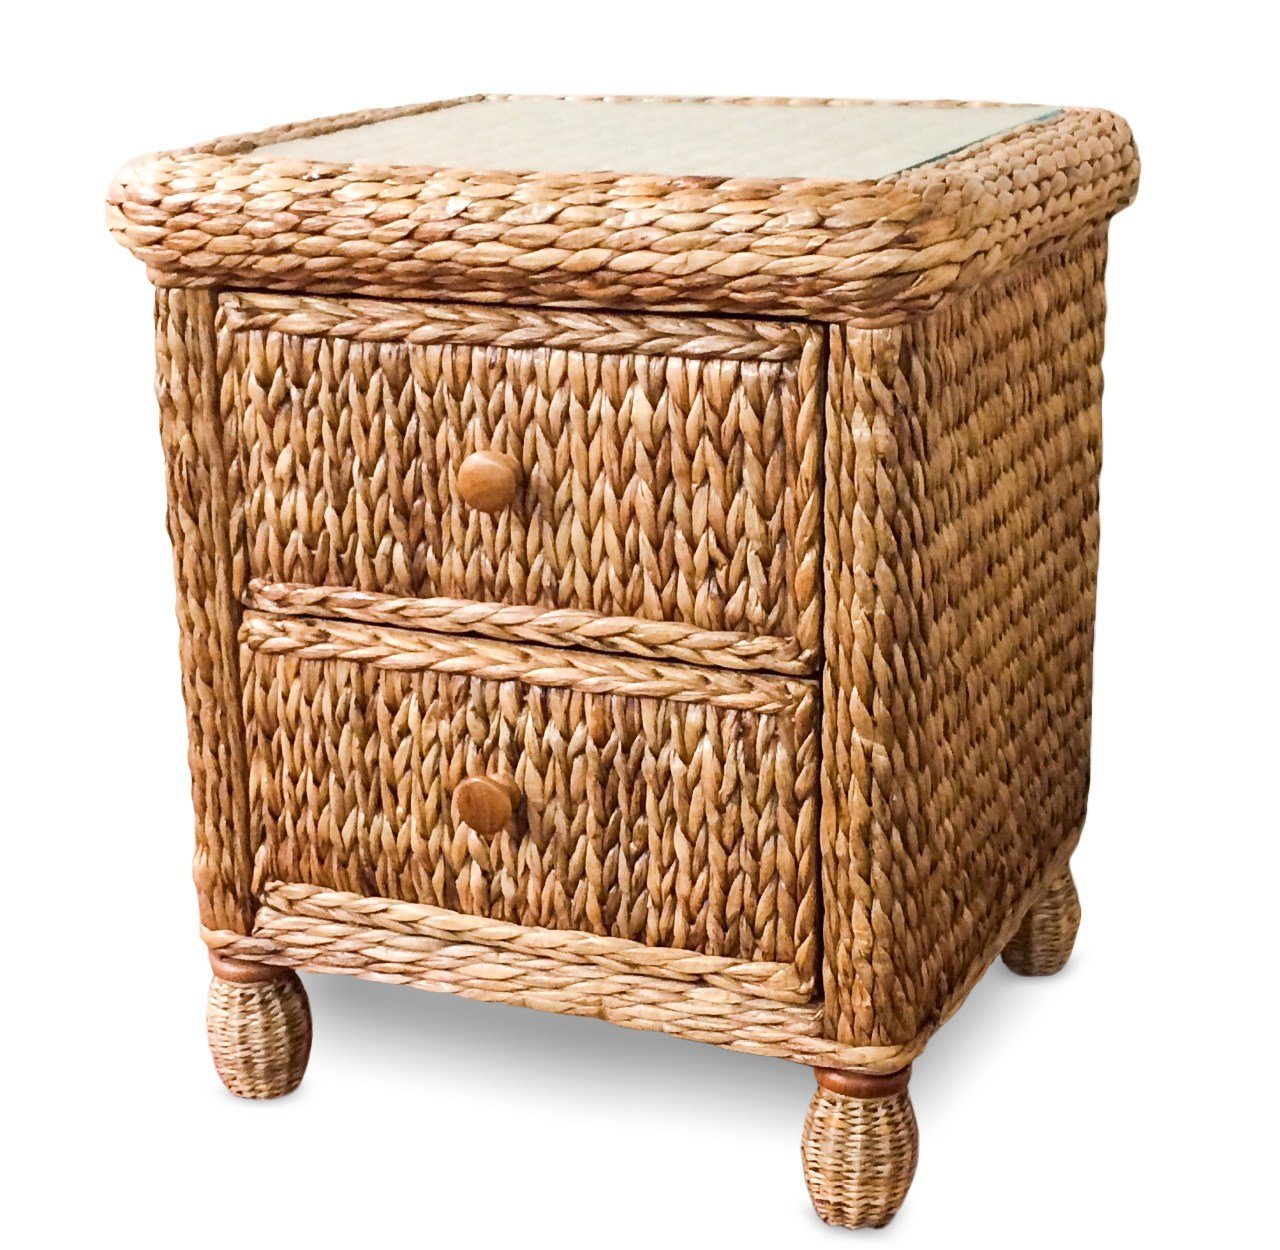 Best Seagrass Nightstand On Sale Miramar With Pictures